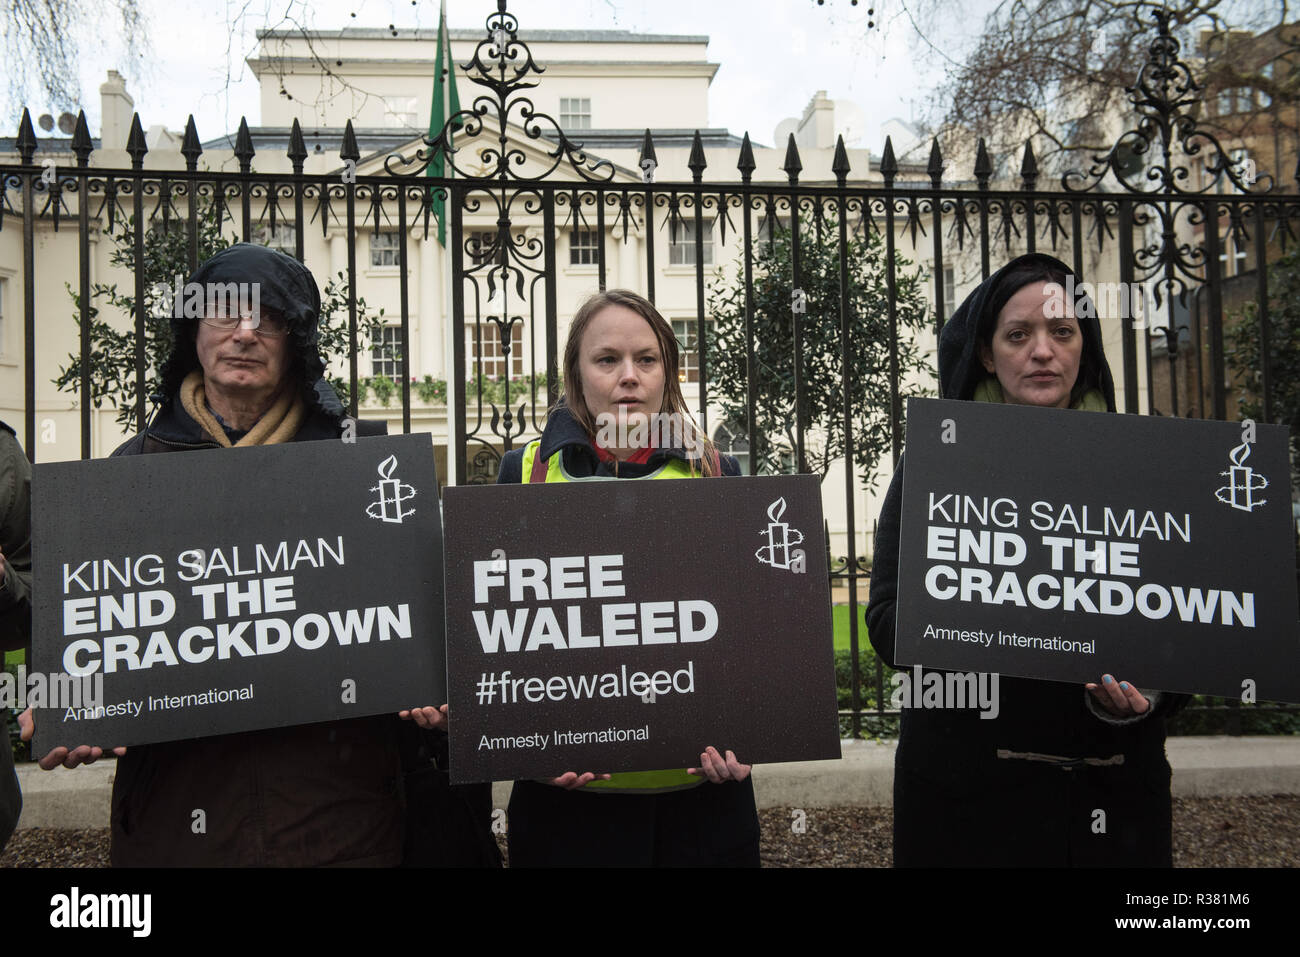 Saudi Embassy, London, UK. 8th January, 2016. Supporters of Raif Badawi, the jailed Saudi activist and blogger, hand over a petition with 250,000 sign - Stock Image